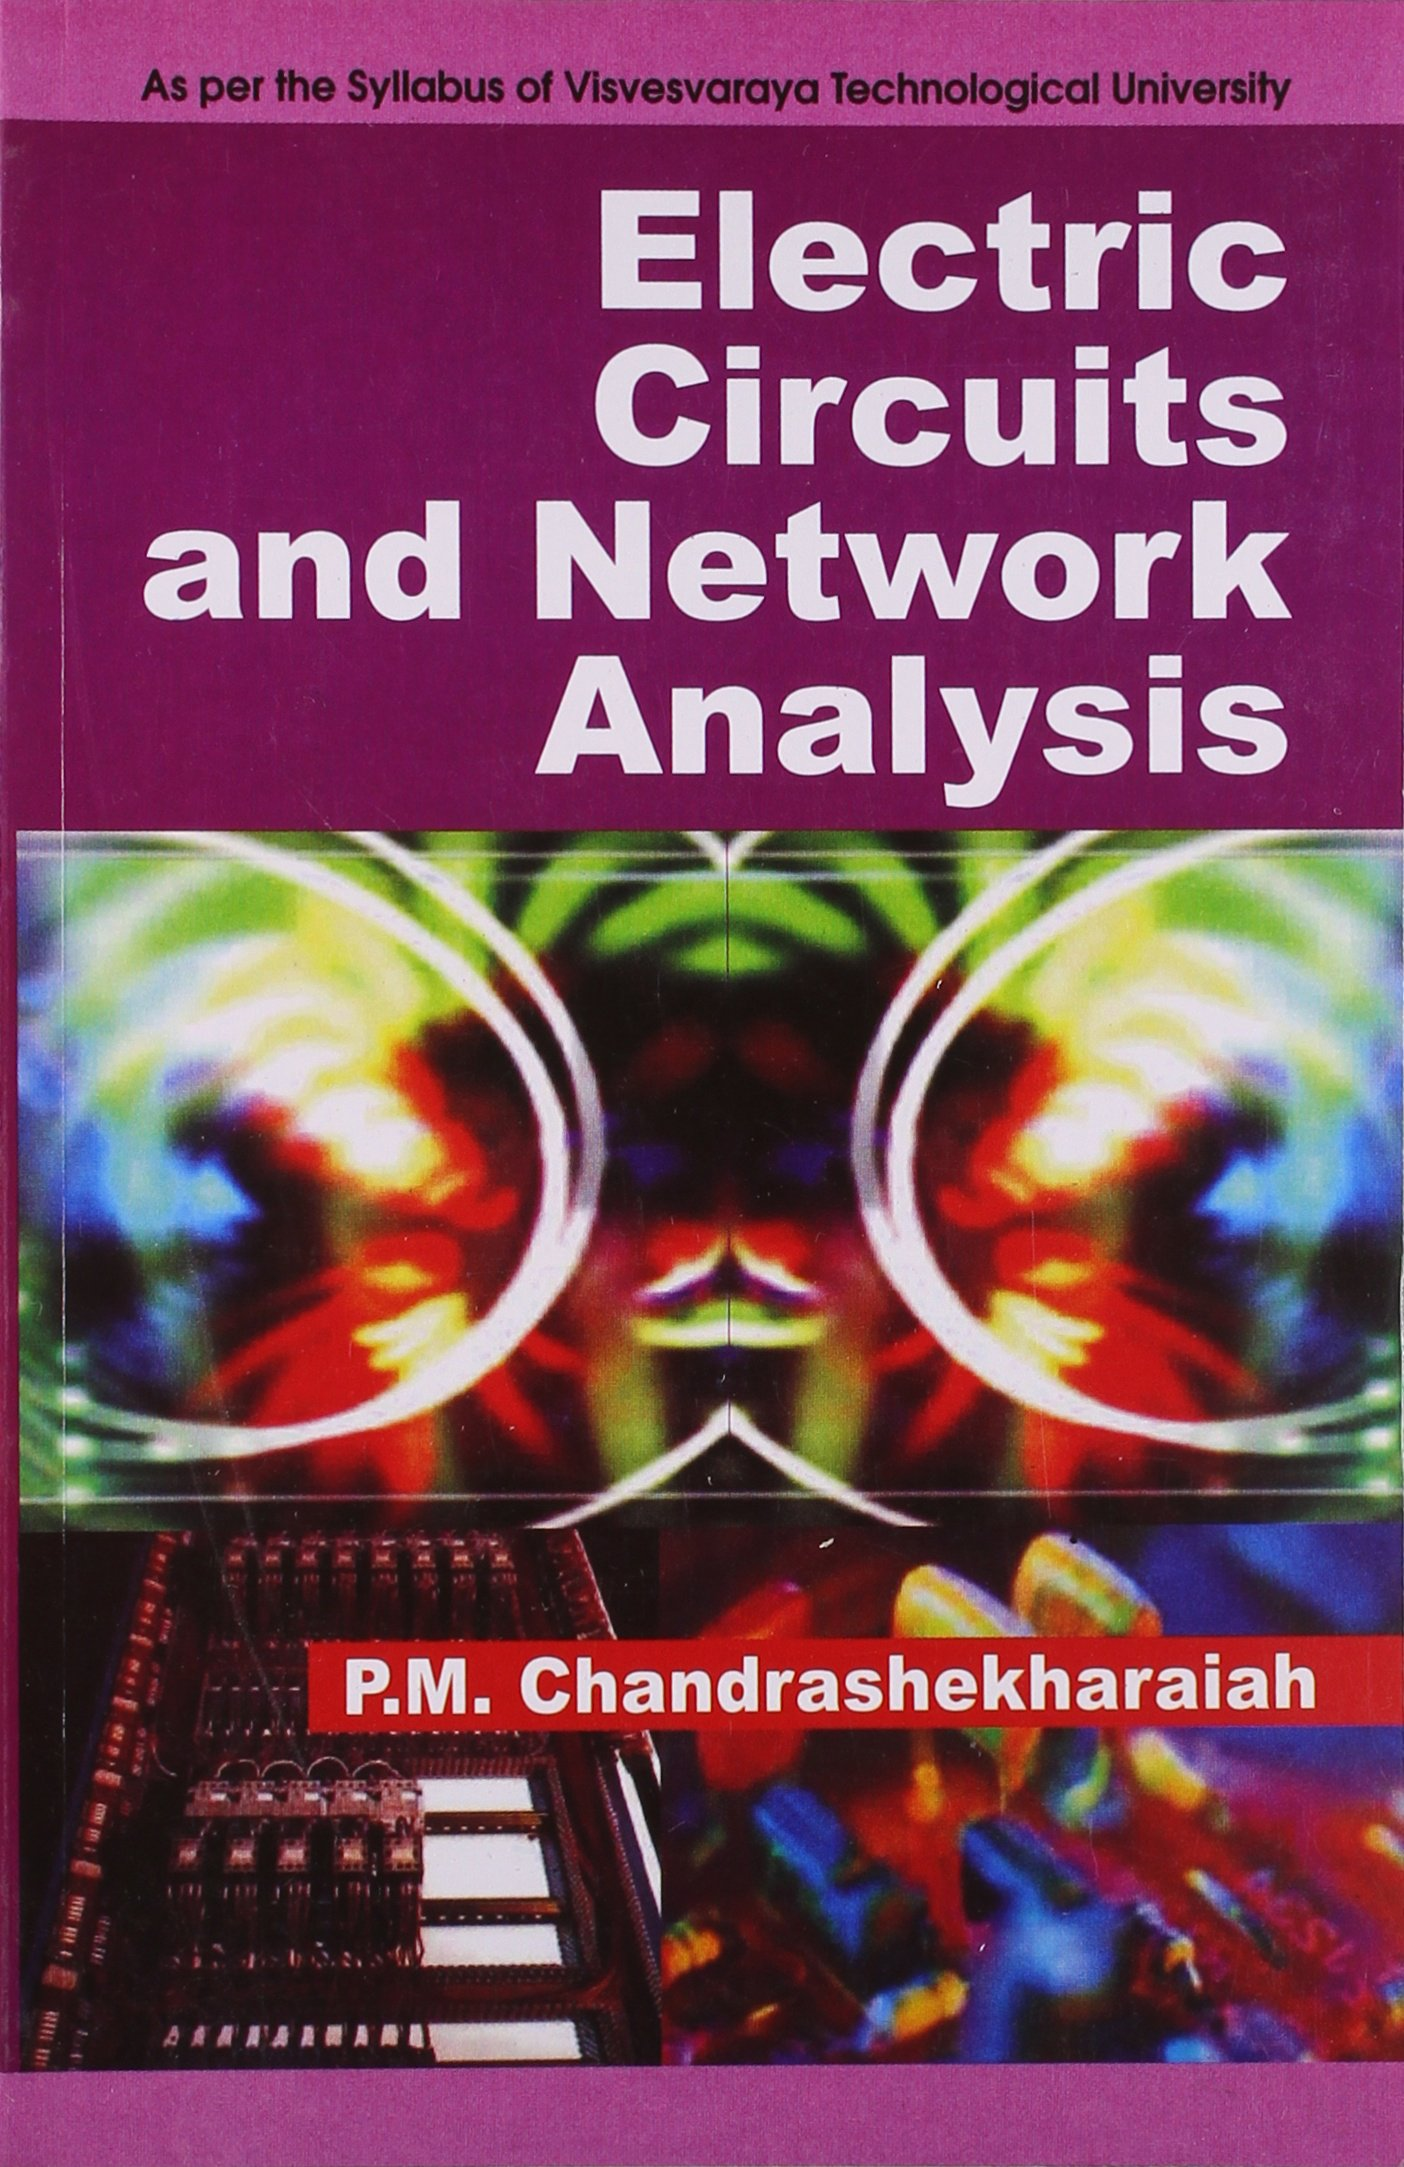 Electric Circuits And Network Analysis Chandrashekharaiah Pm Free Energy Generator Circuit An Unsolved Issue Electronic 9788123914107 Books